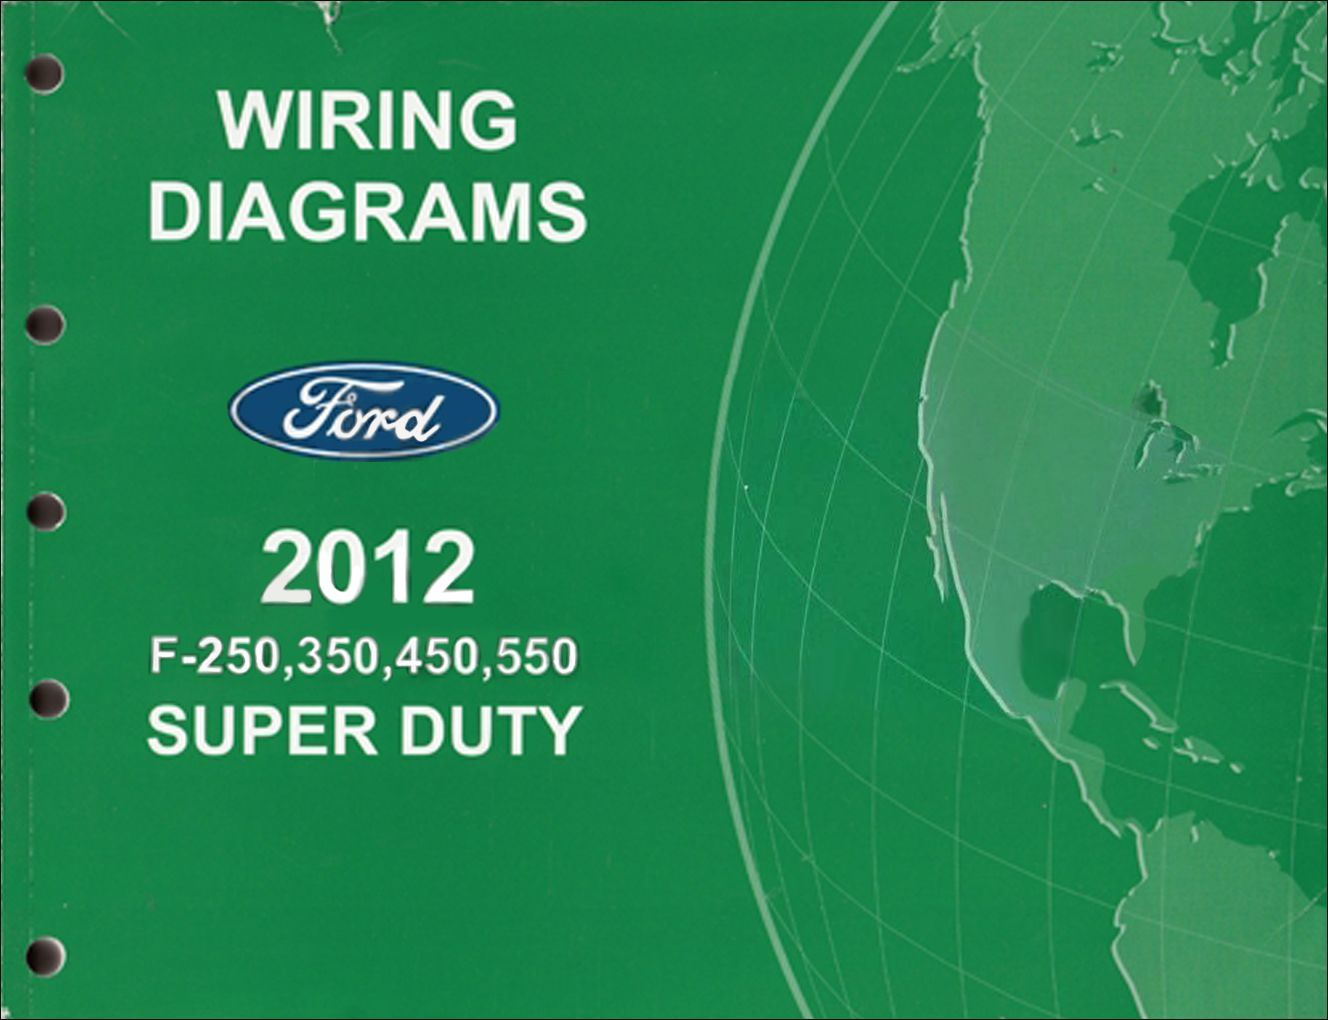 hight resolution of 2012 ford f 250 thru 550 super duty wiring diagram manual original ford f350 tail light wiring diagram ford f 350 wiring diagrams